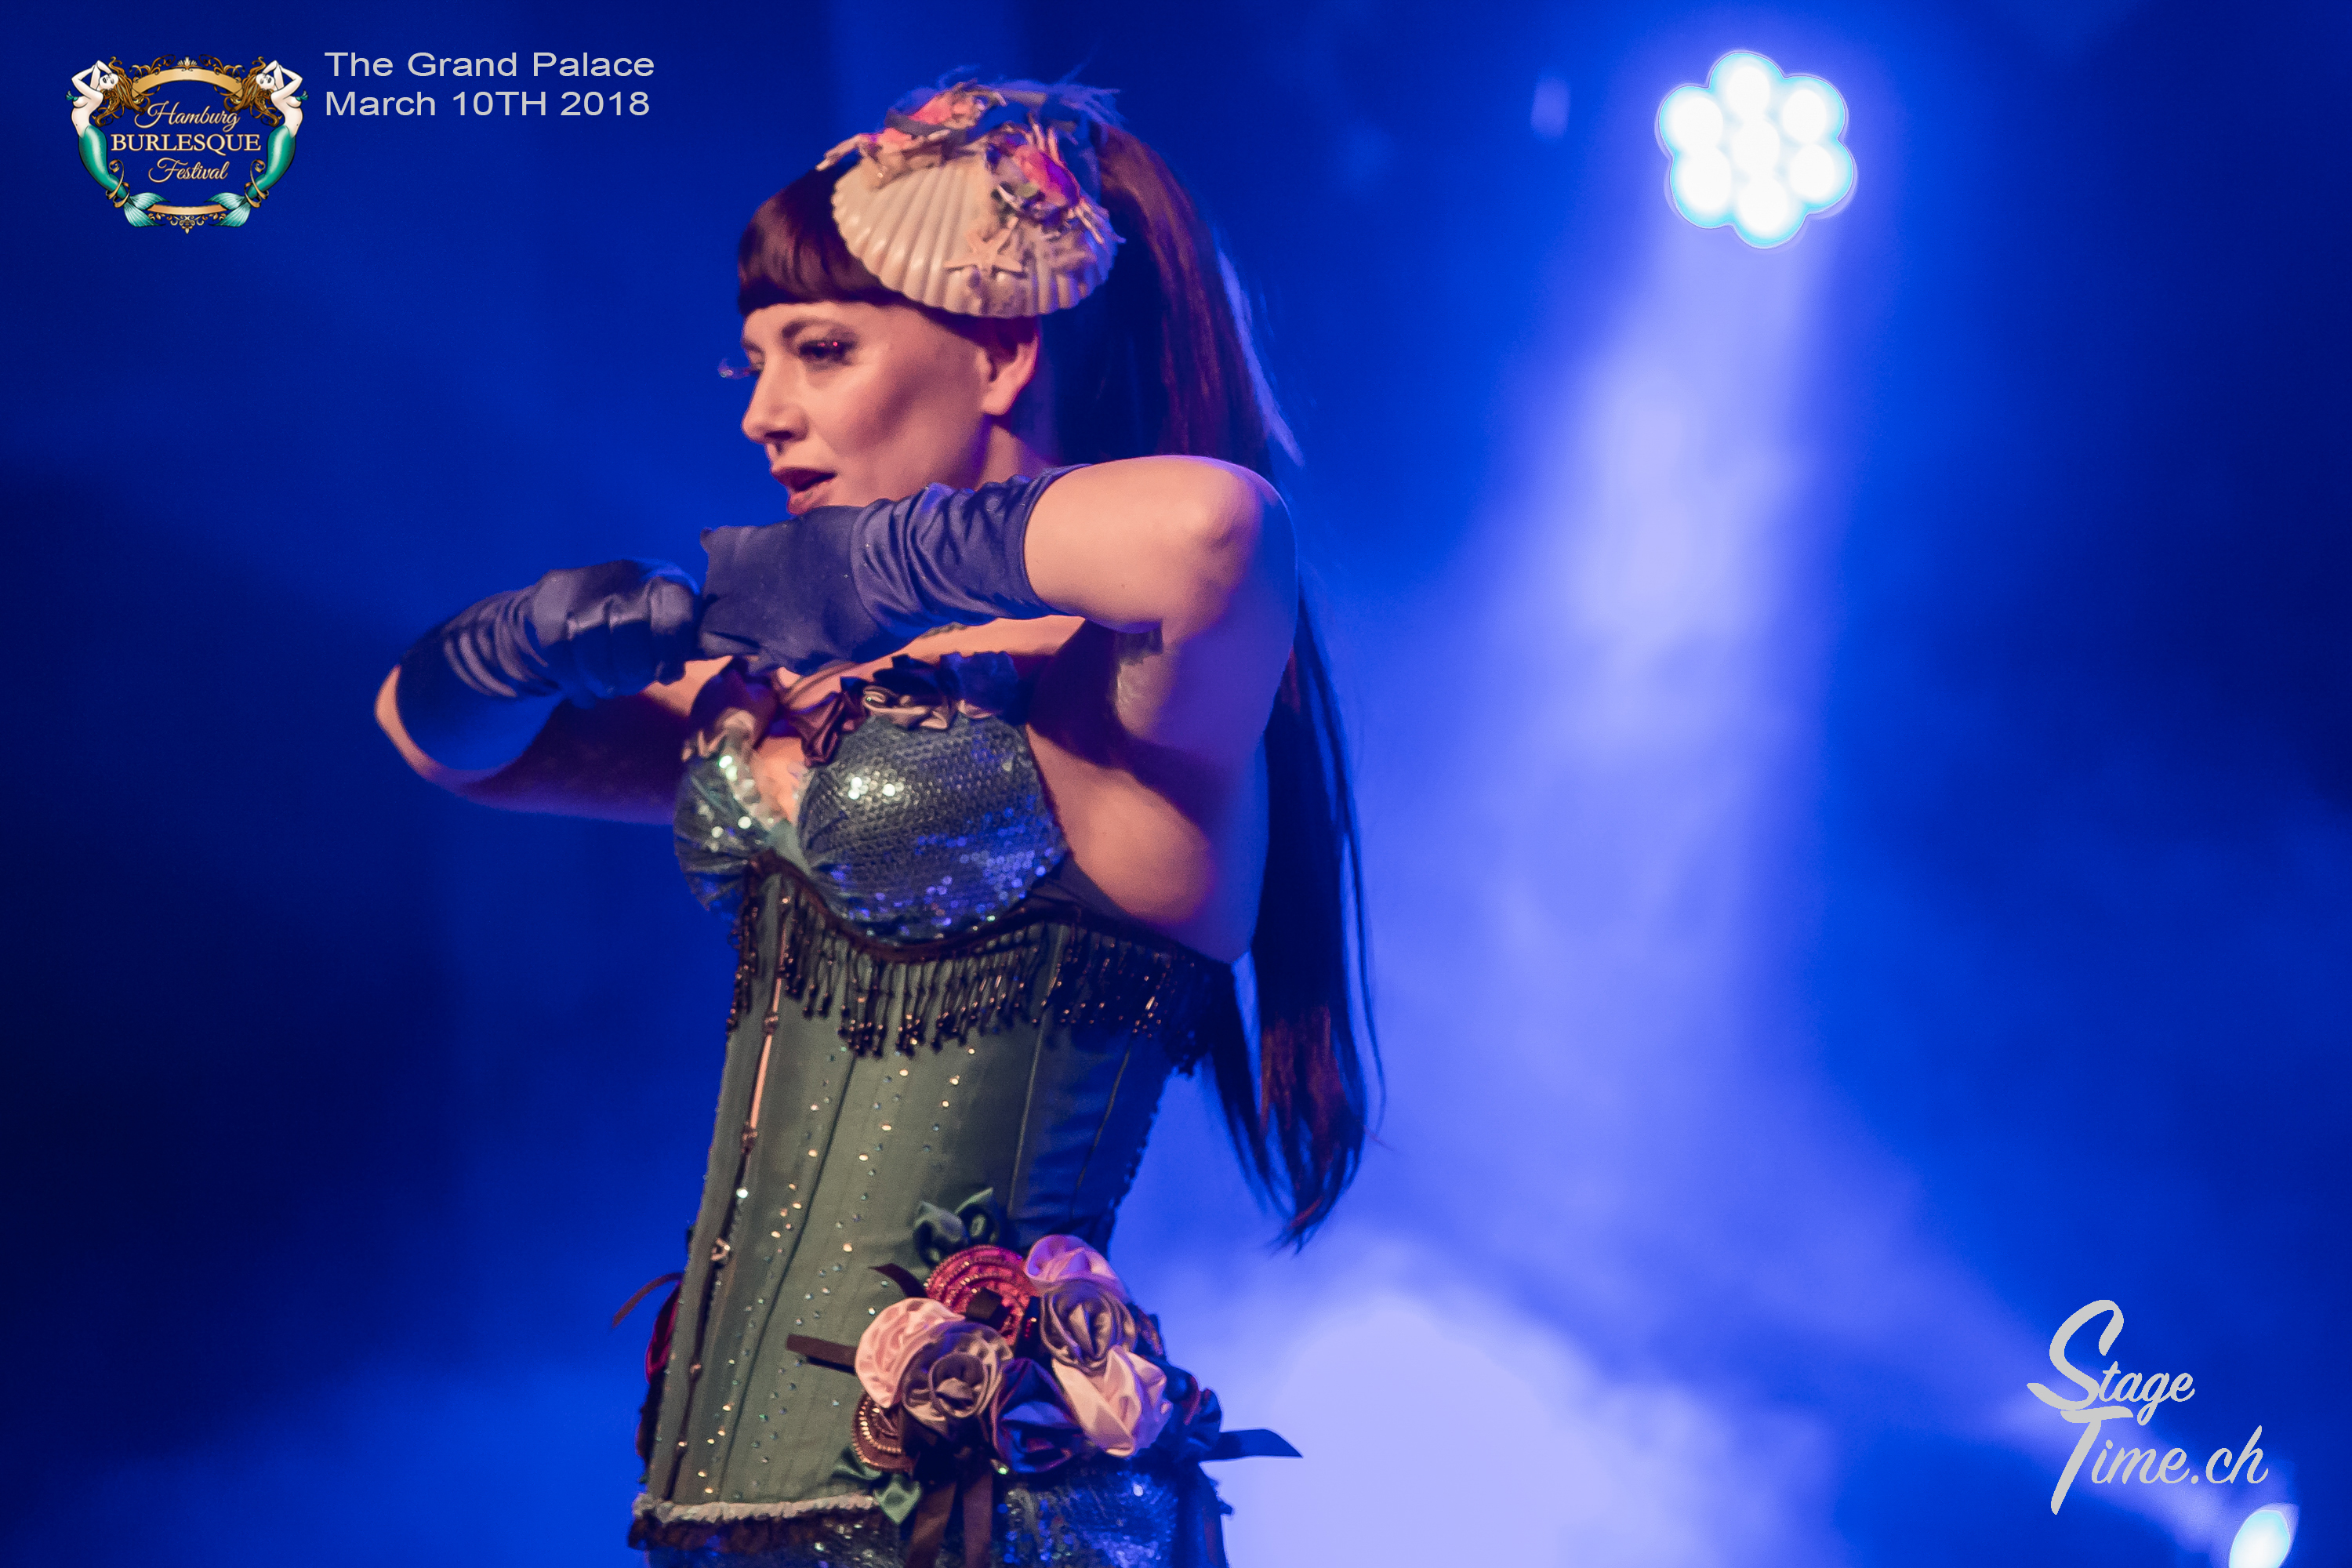 Hamburg_Burlesque_Festival_The_Grand_Palace__📷_Christoph_Gurtner_I_stagetime.ch-29